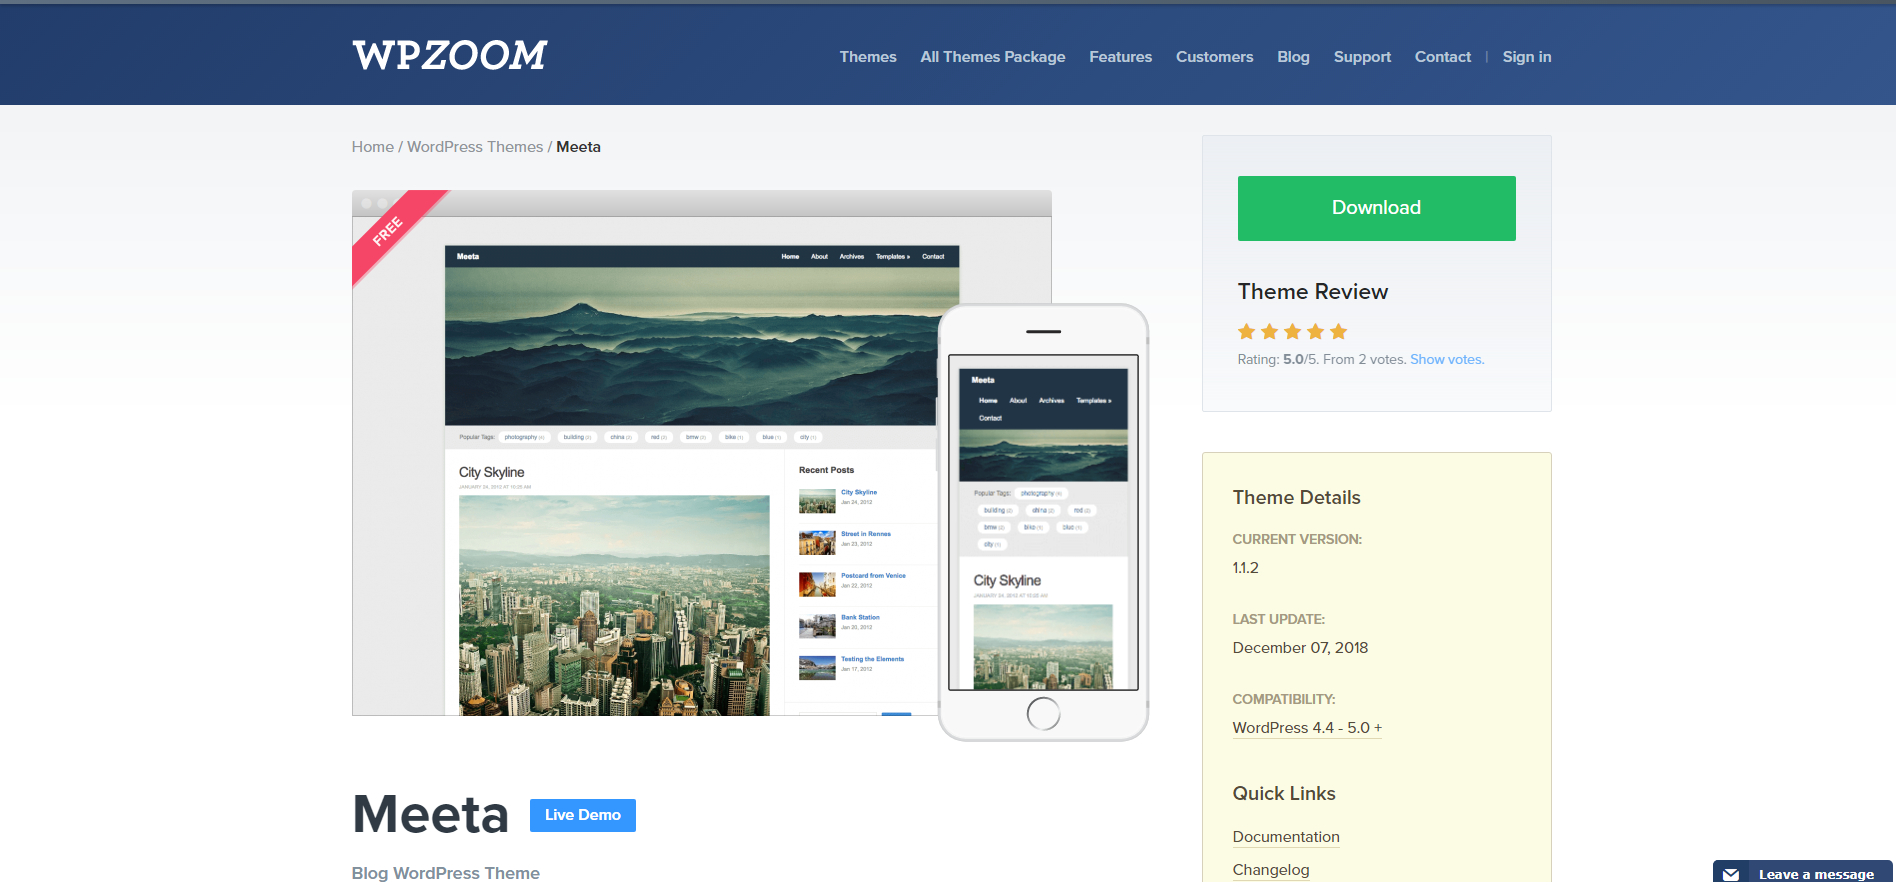 Press75 | 15 Places To Find The Best Free WordPress Themes